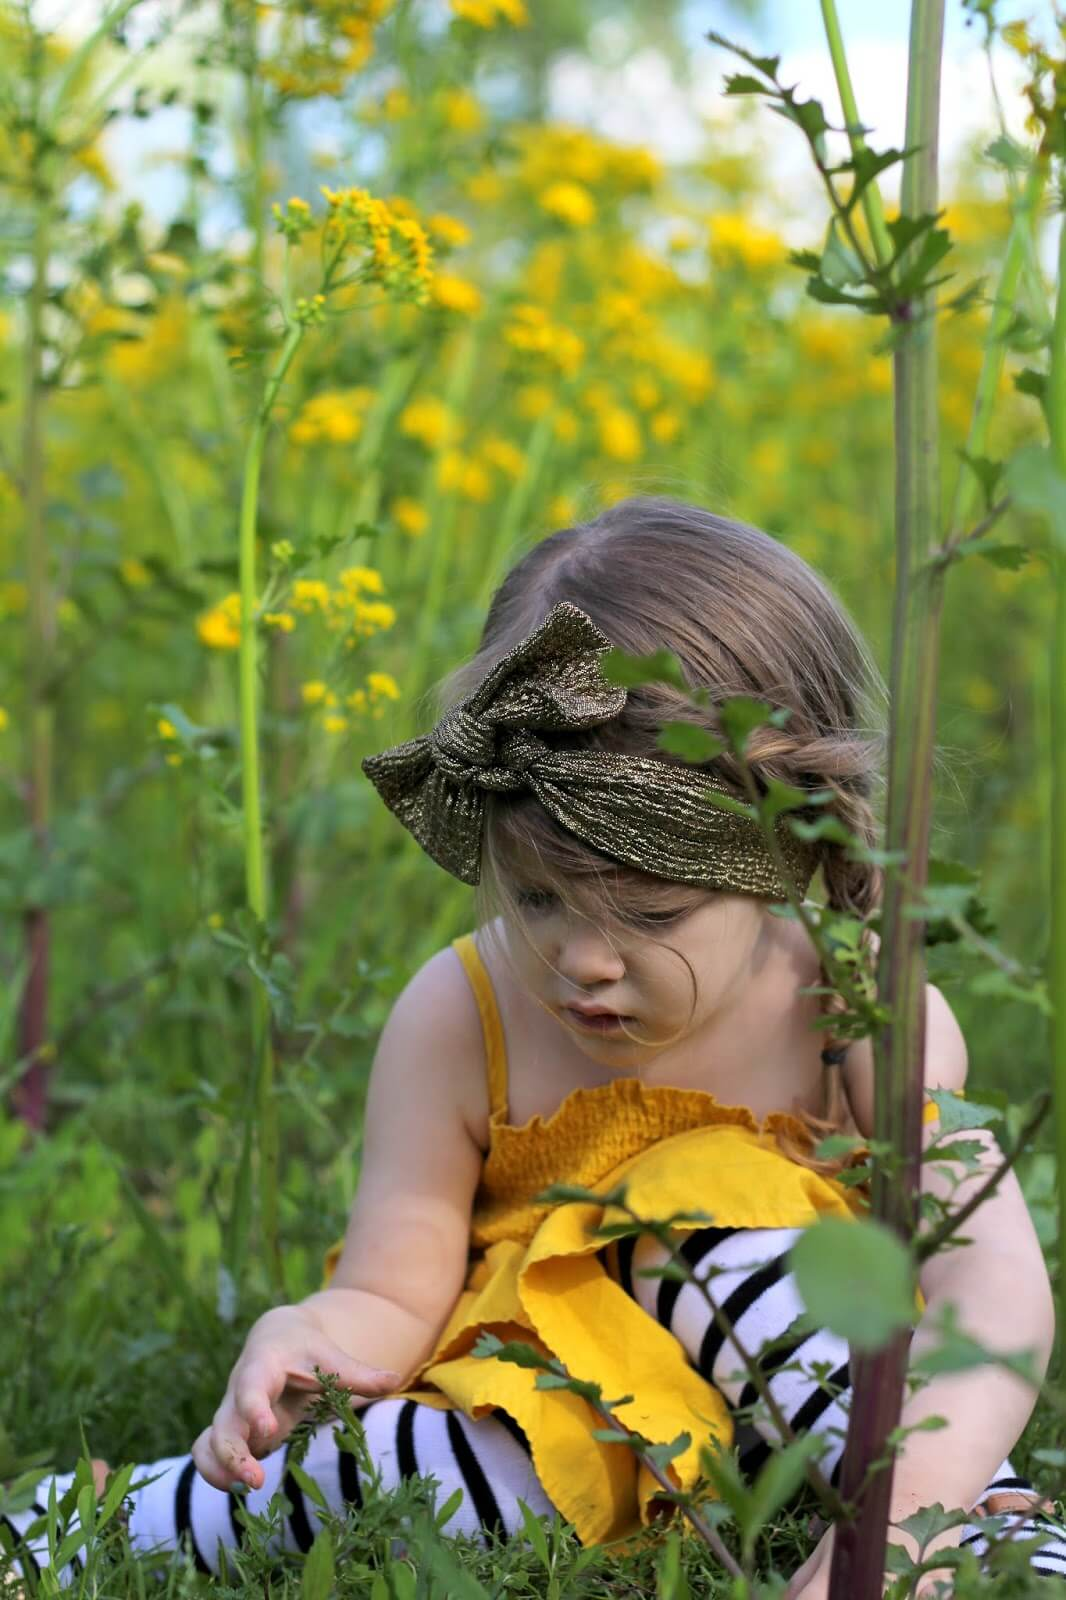 a1db5b0be6c young girl in yellow dress in yellow flowers